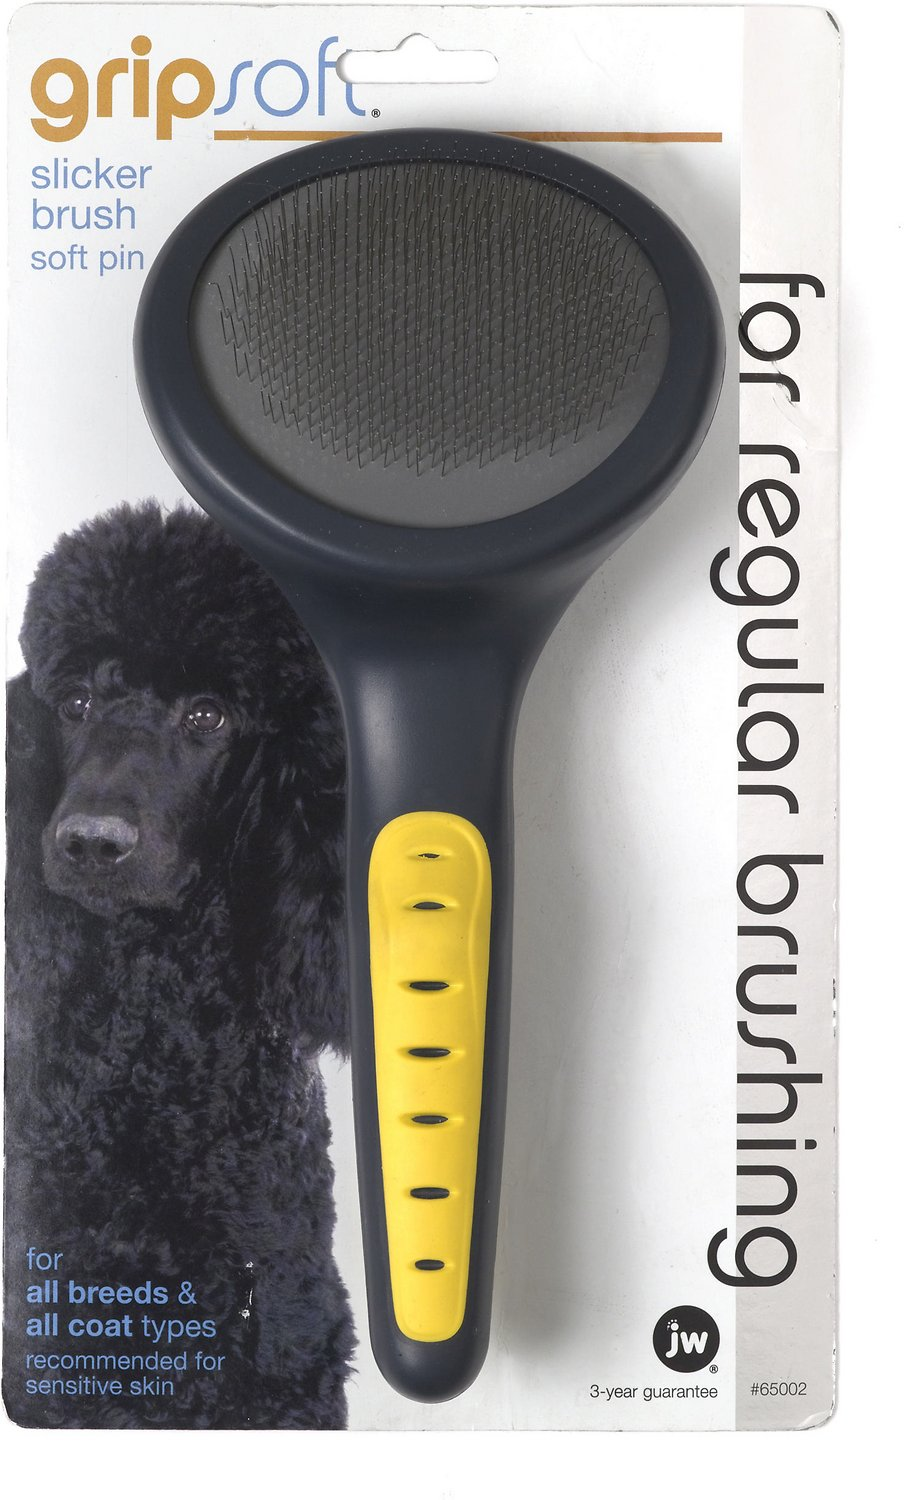 JW Pet Gripsoft Slicker Brush Soft Pin Image